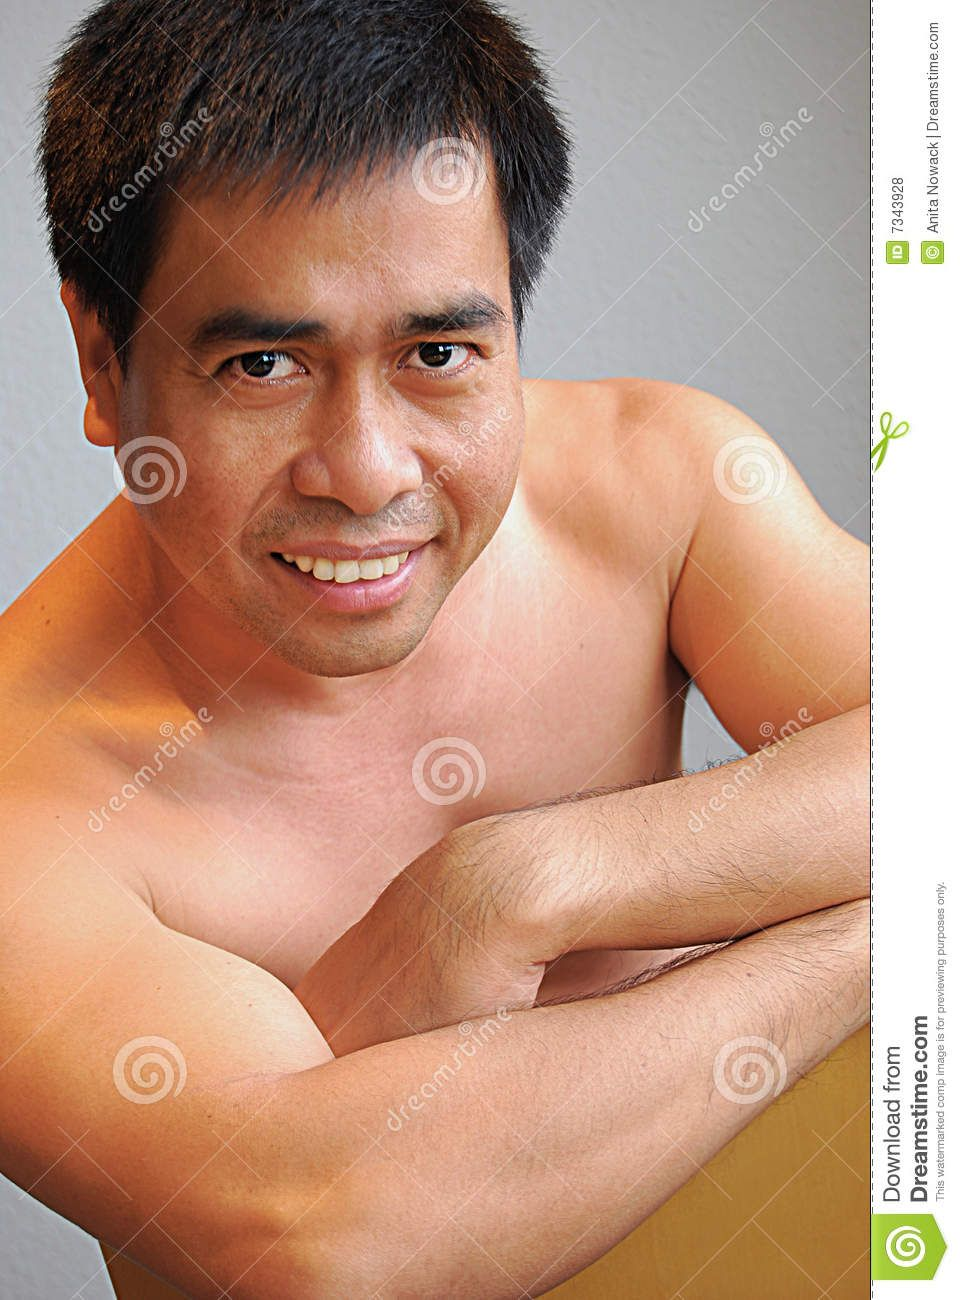 Tinker reccomend Asian male models photos